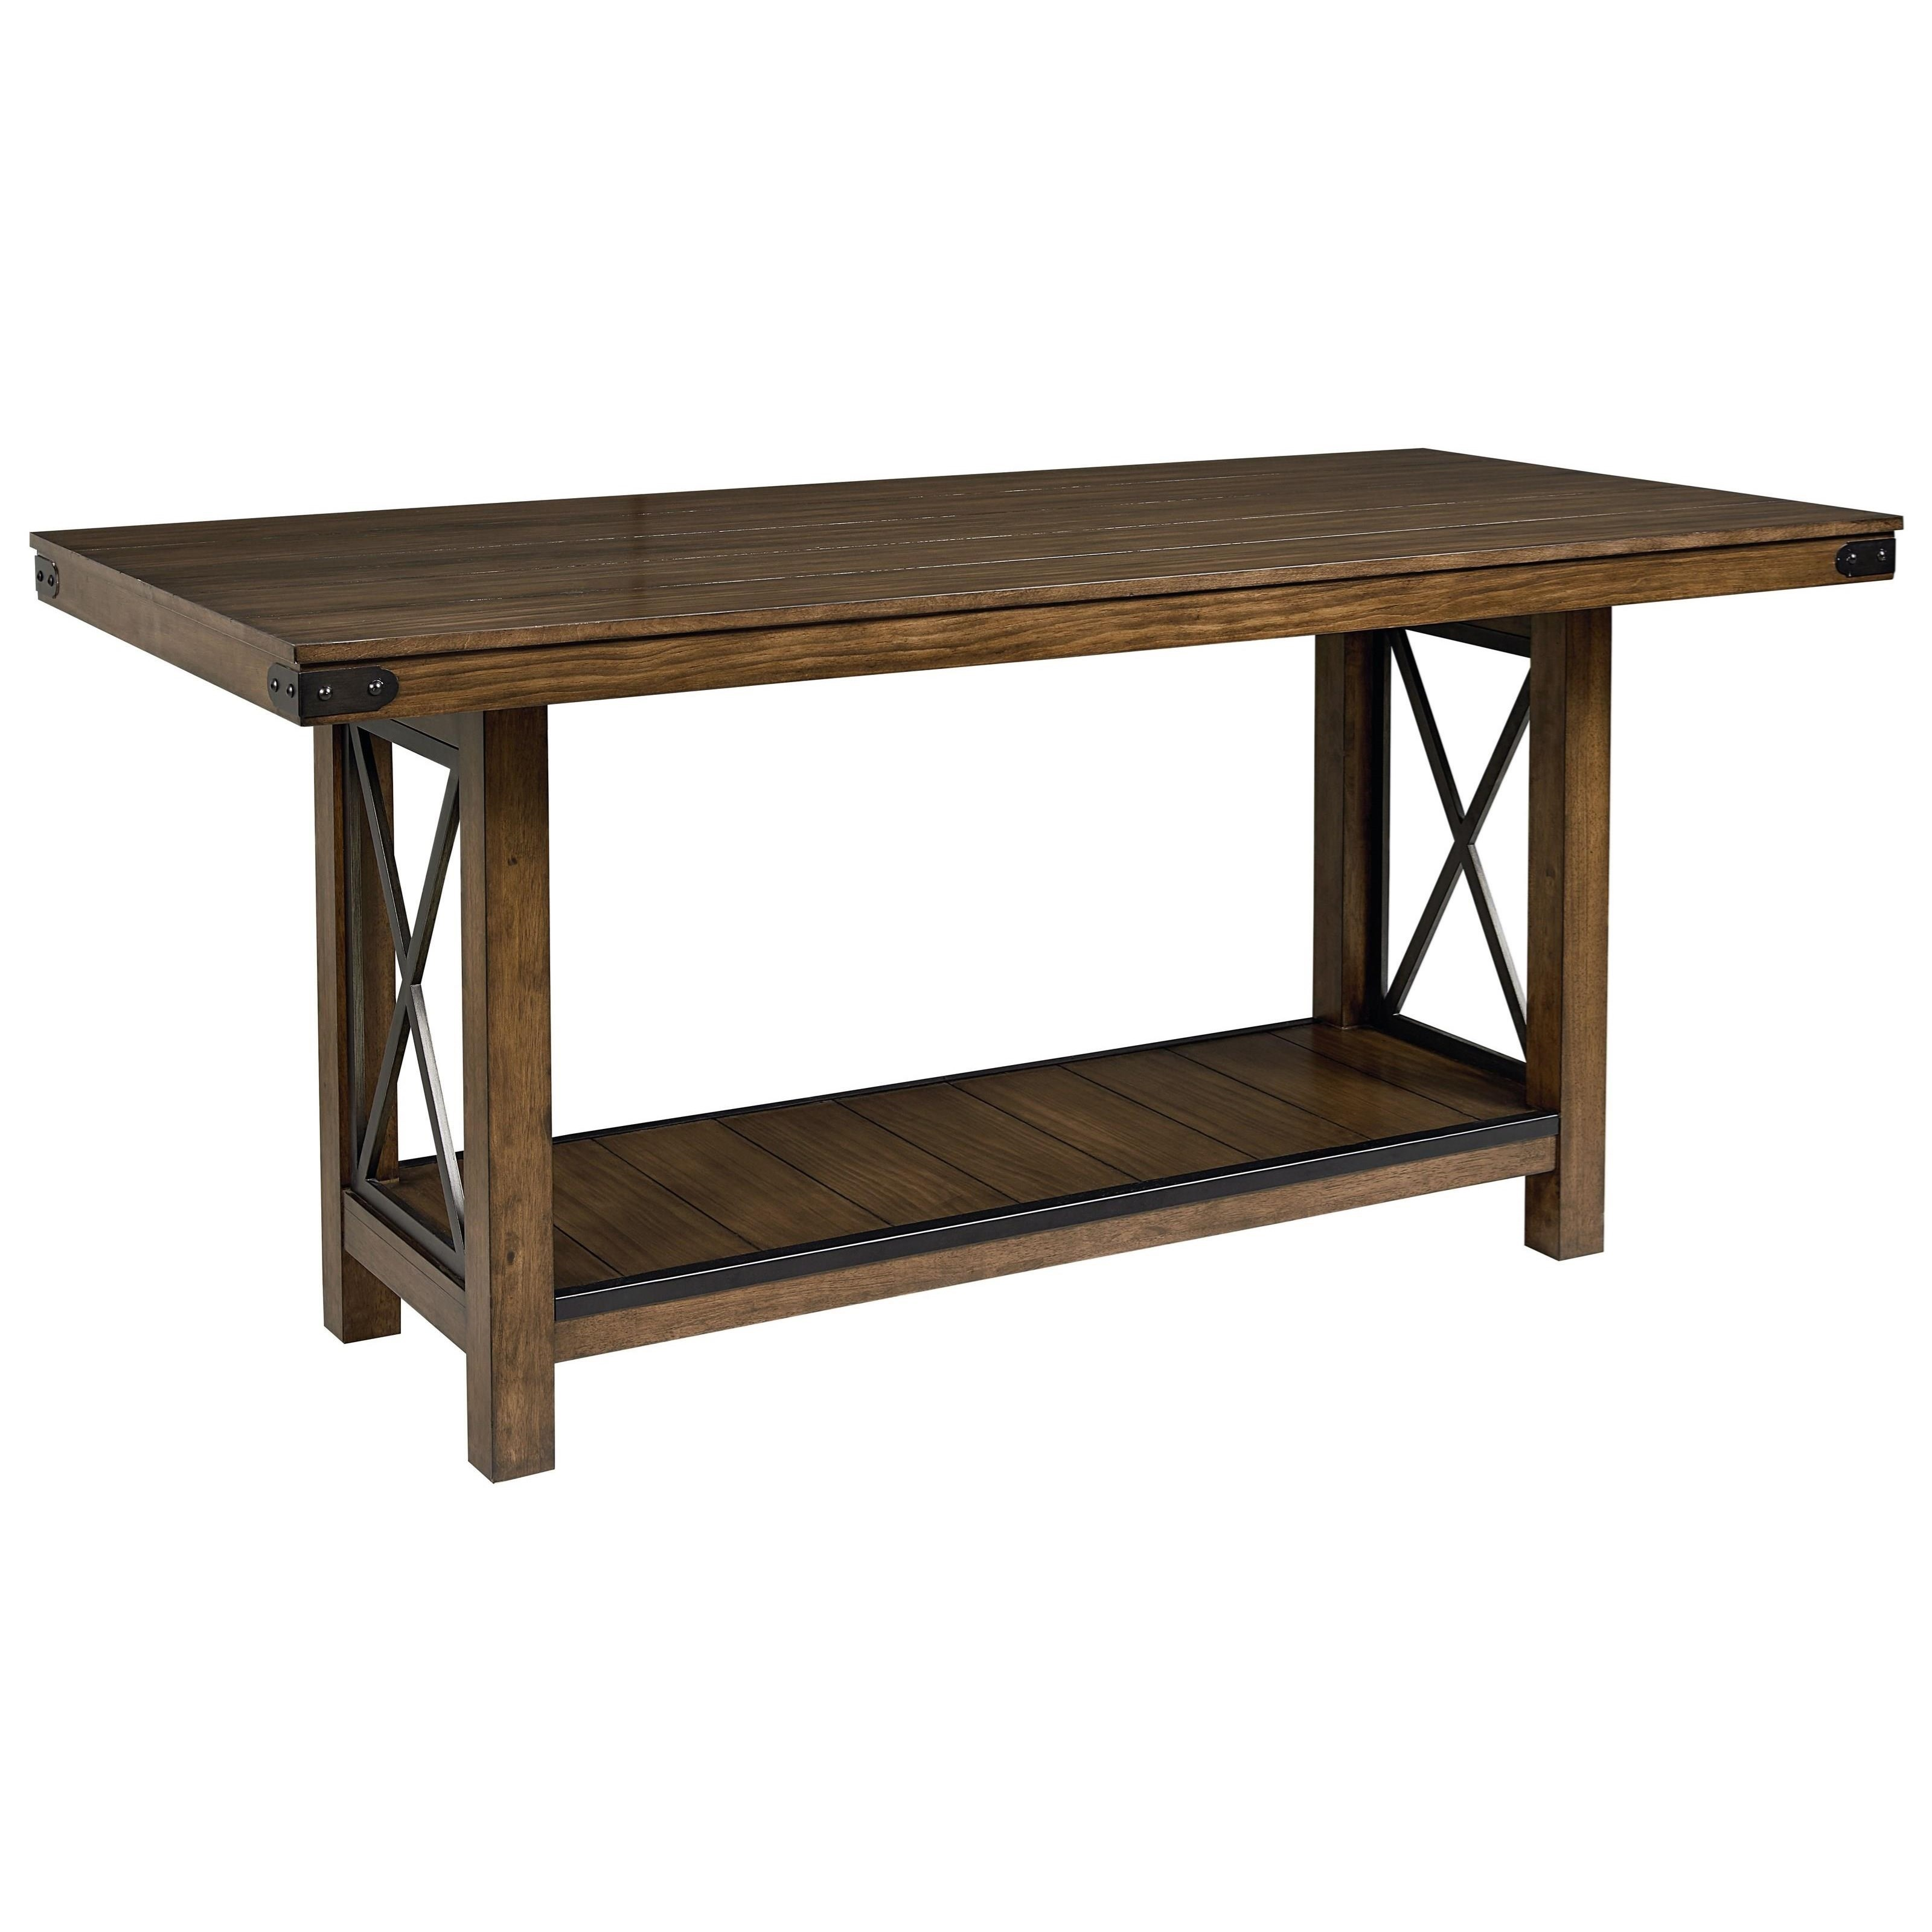 Standard Furniture Benson Counter Height Table - Item Number: 11536